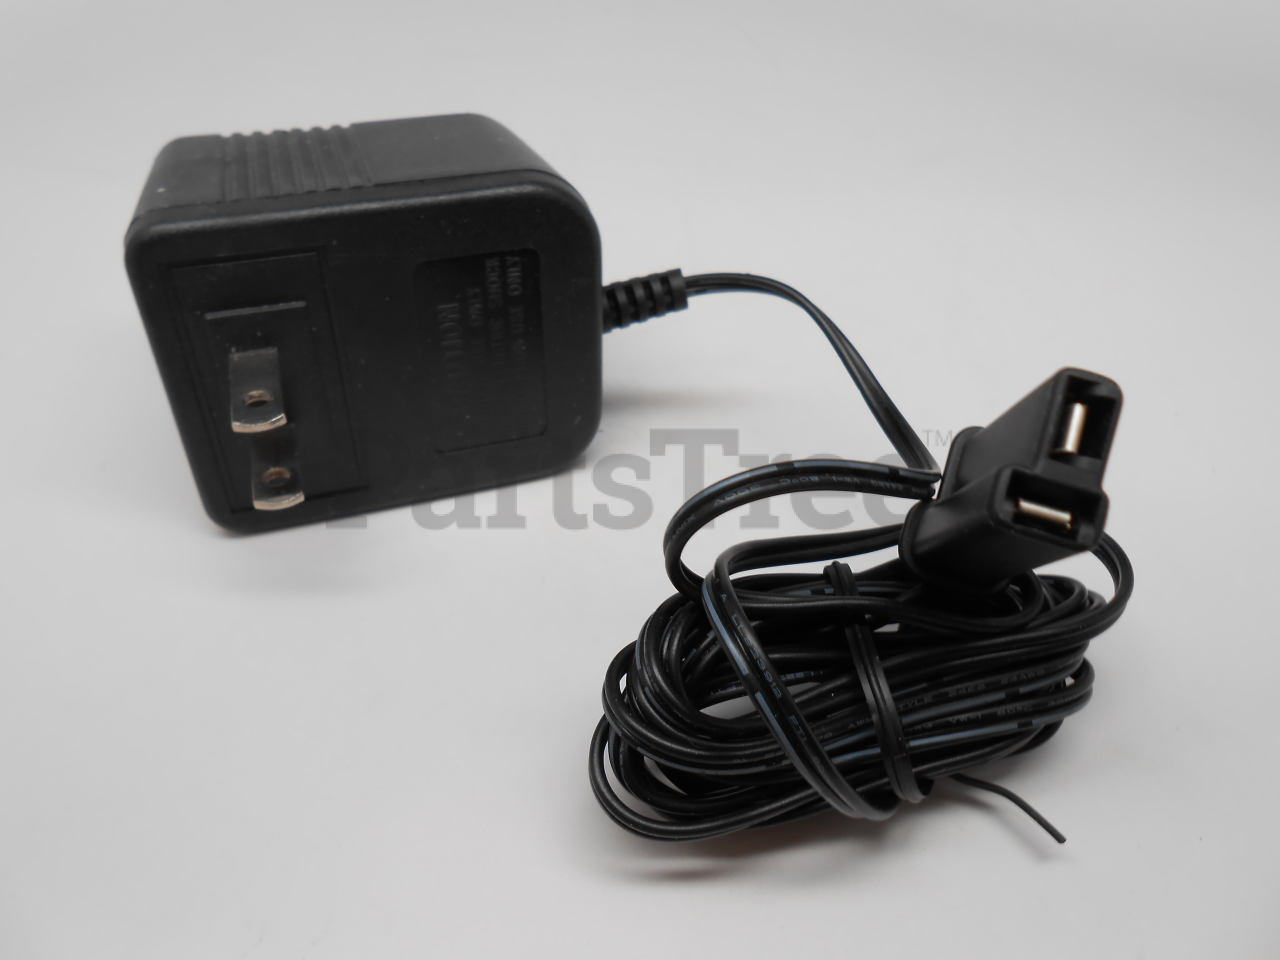 Snapper Part 7103988, USE 7103988YP: CHARGER BATTERY 14V ...